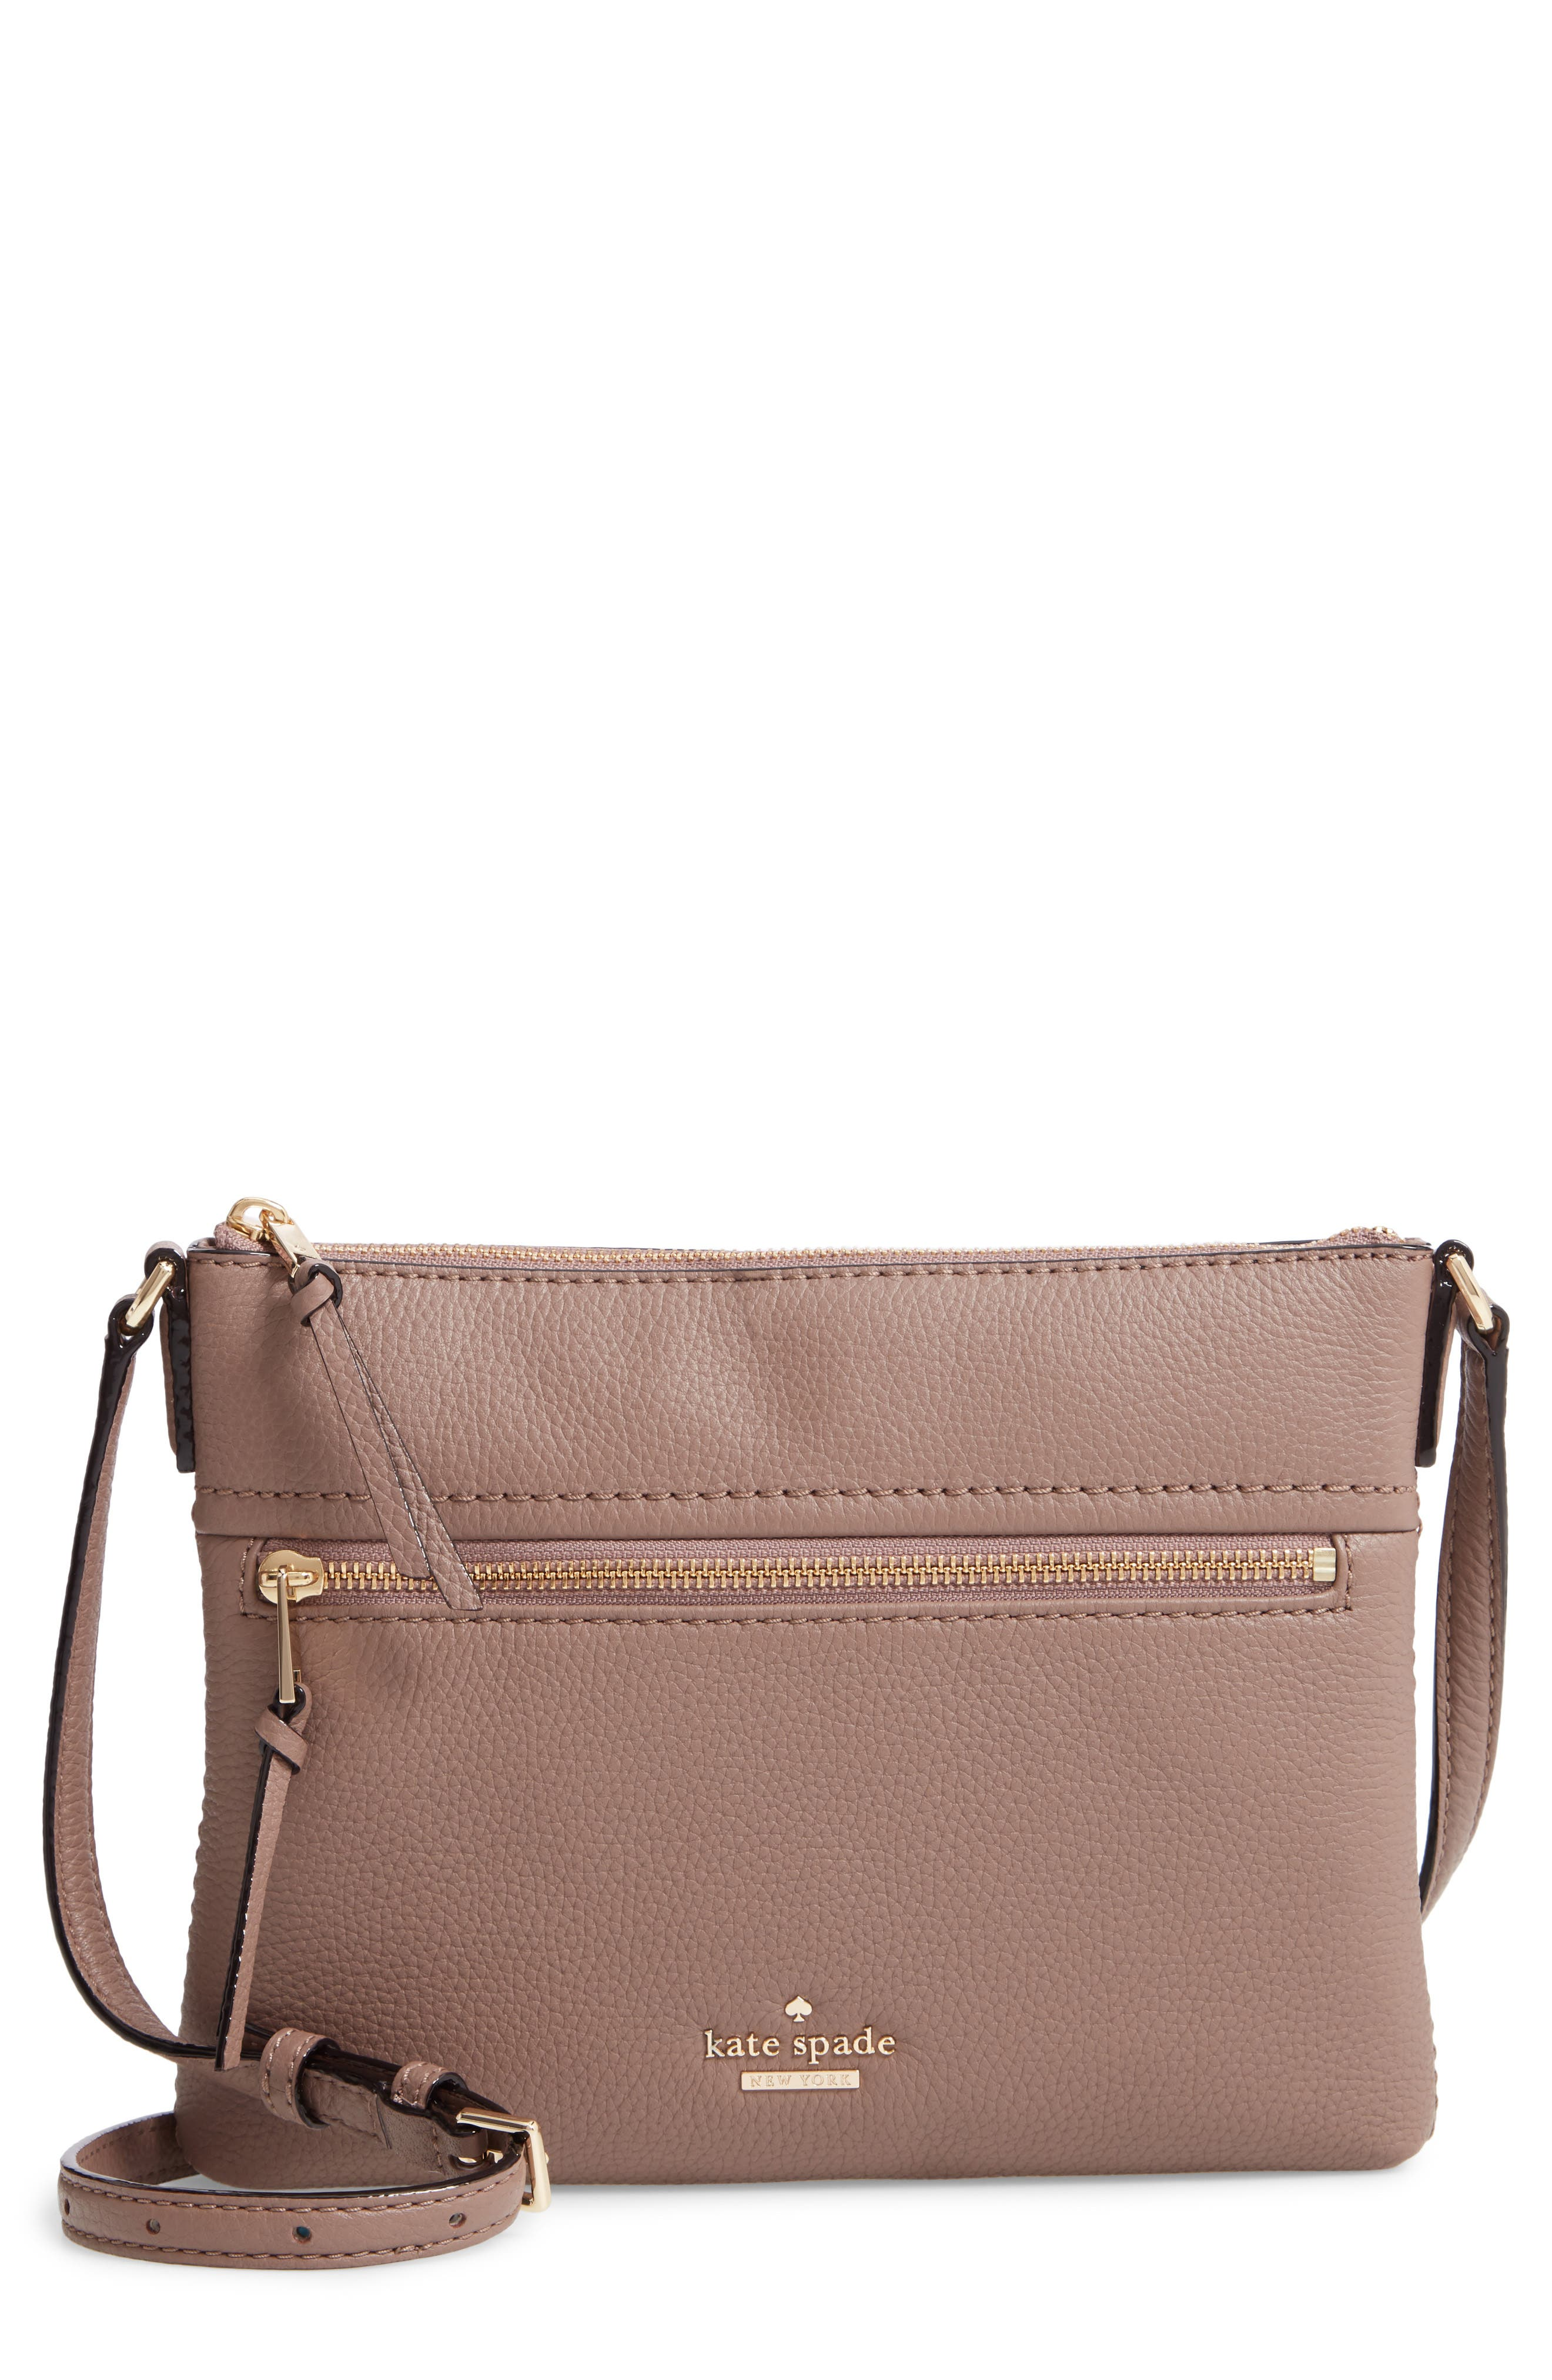 jackson street - gabriele leather crossbody bag,                         Main,                         color, BROWNSTONE